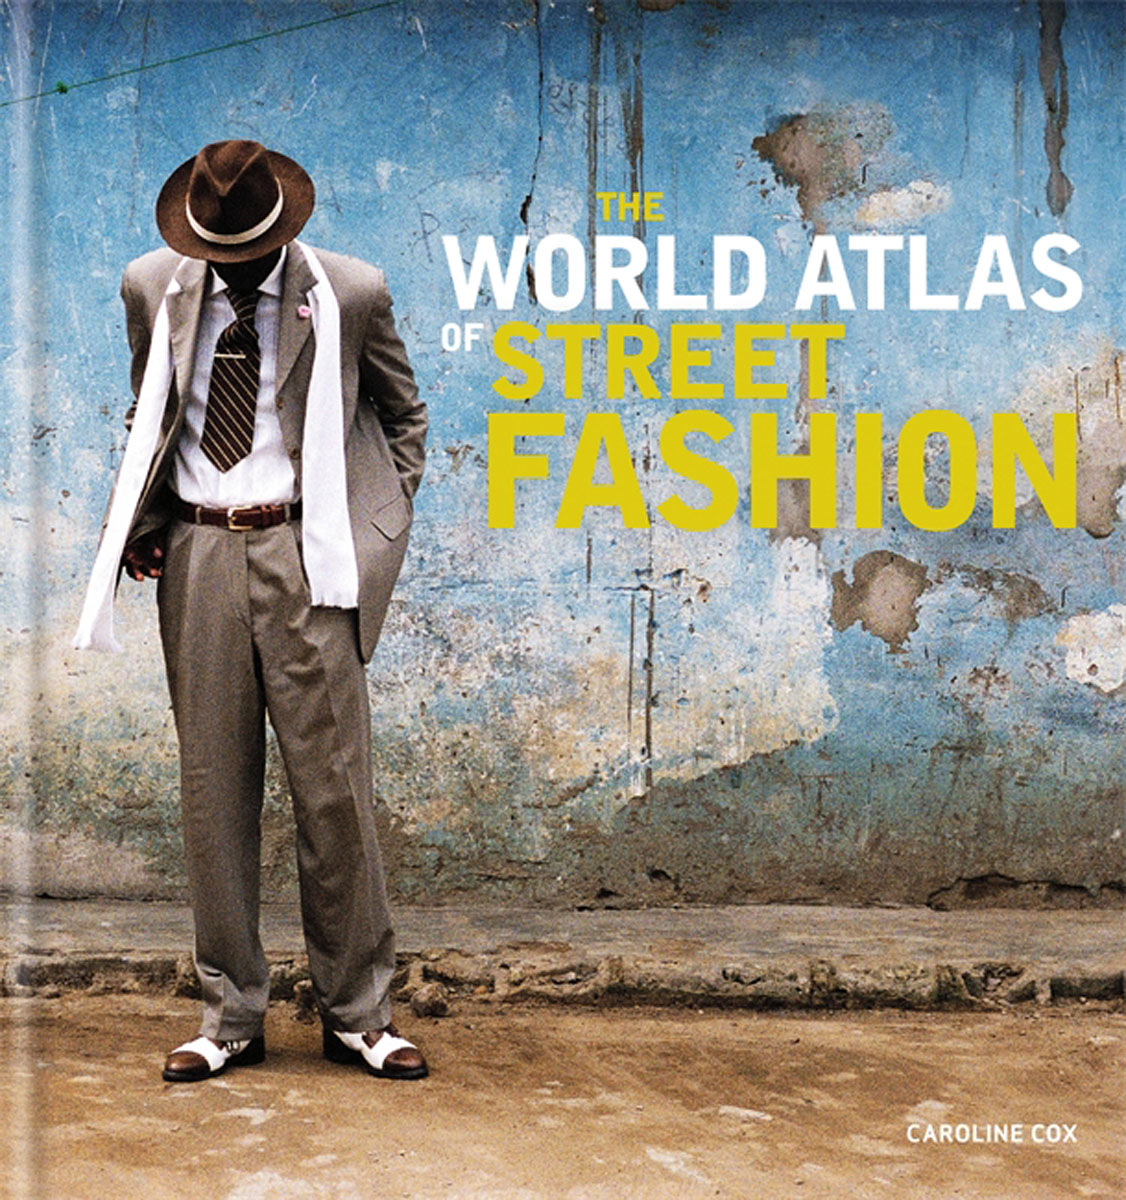 The World Atlas of Street Fashion highsmith p found in the street